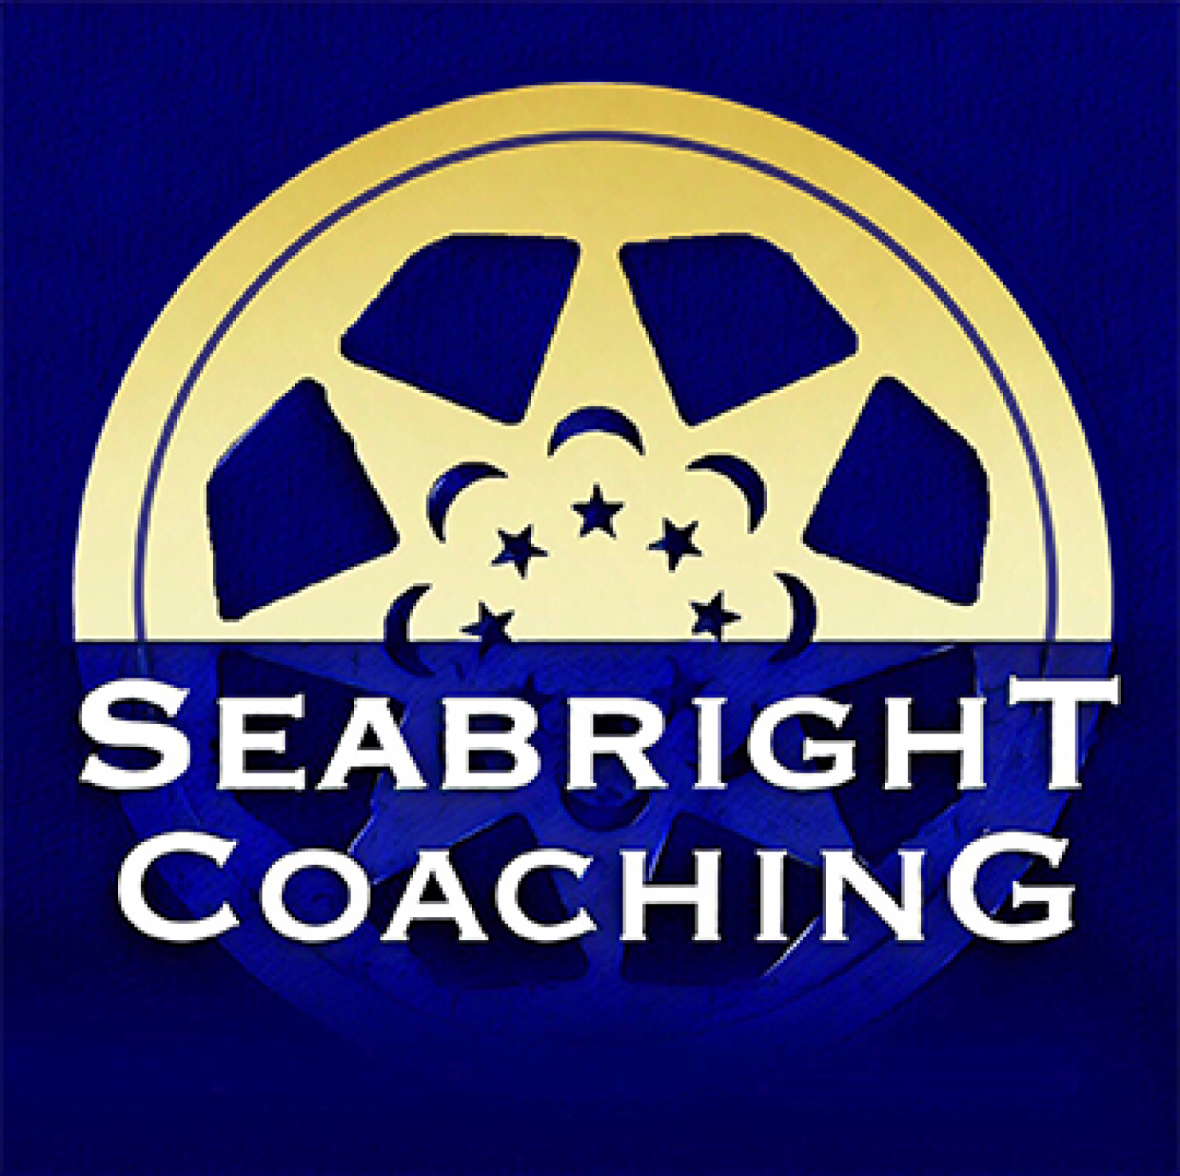 Seabright Coaching